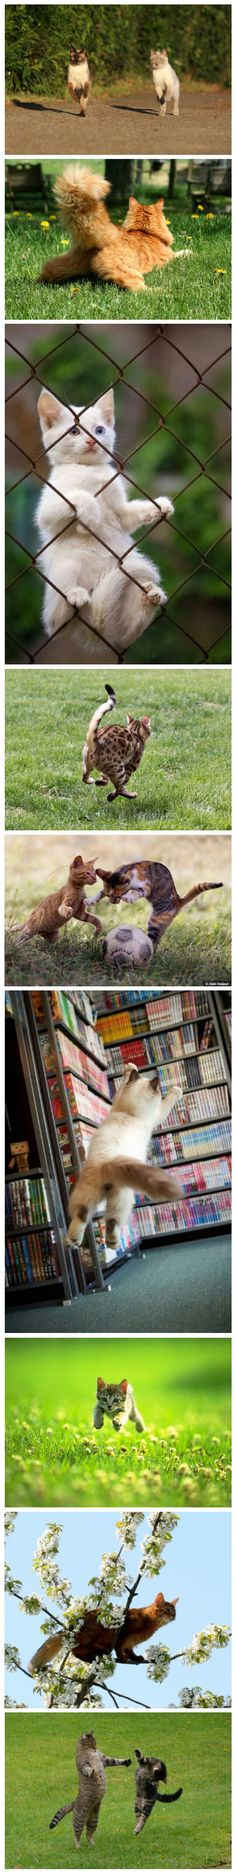 Cats can play